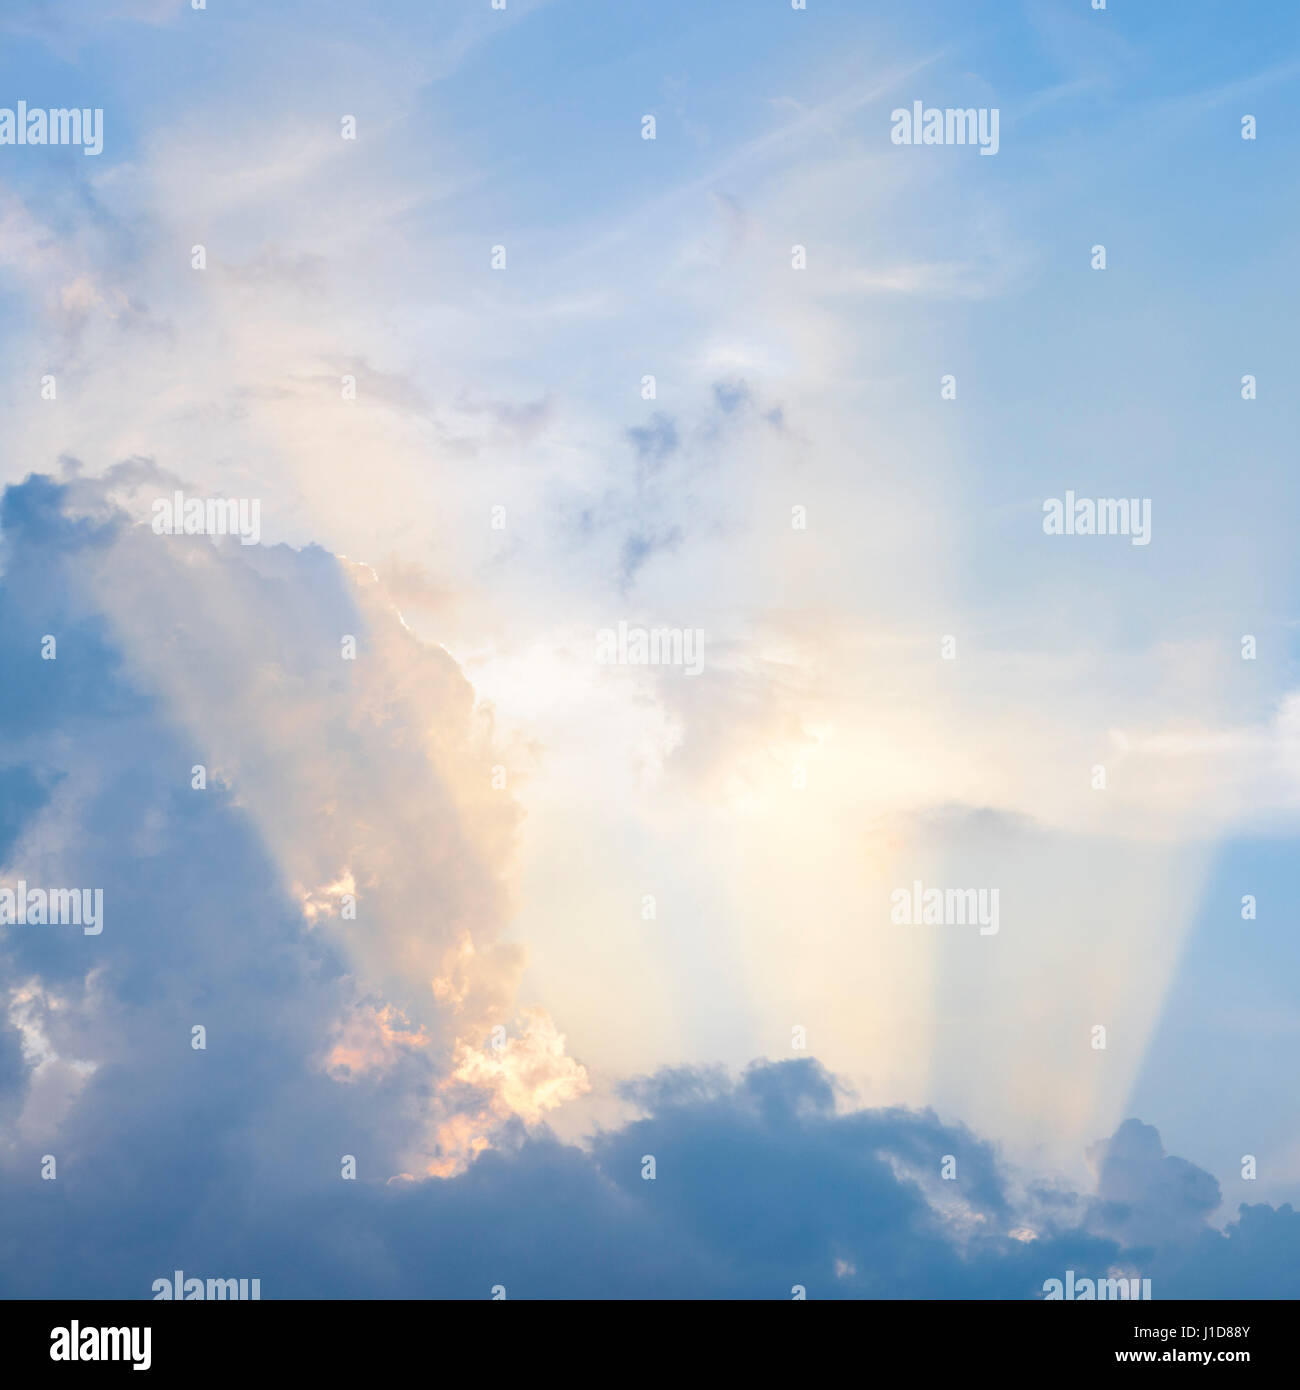 Beams of sunlight from a late evening sun shining through clouds into the blue sky - Stock Image